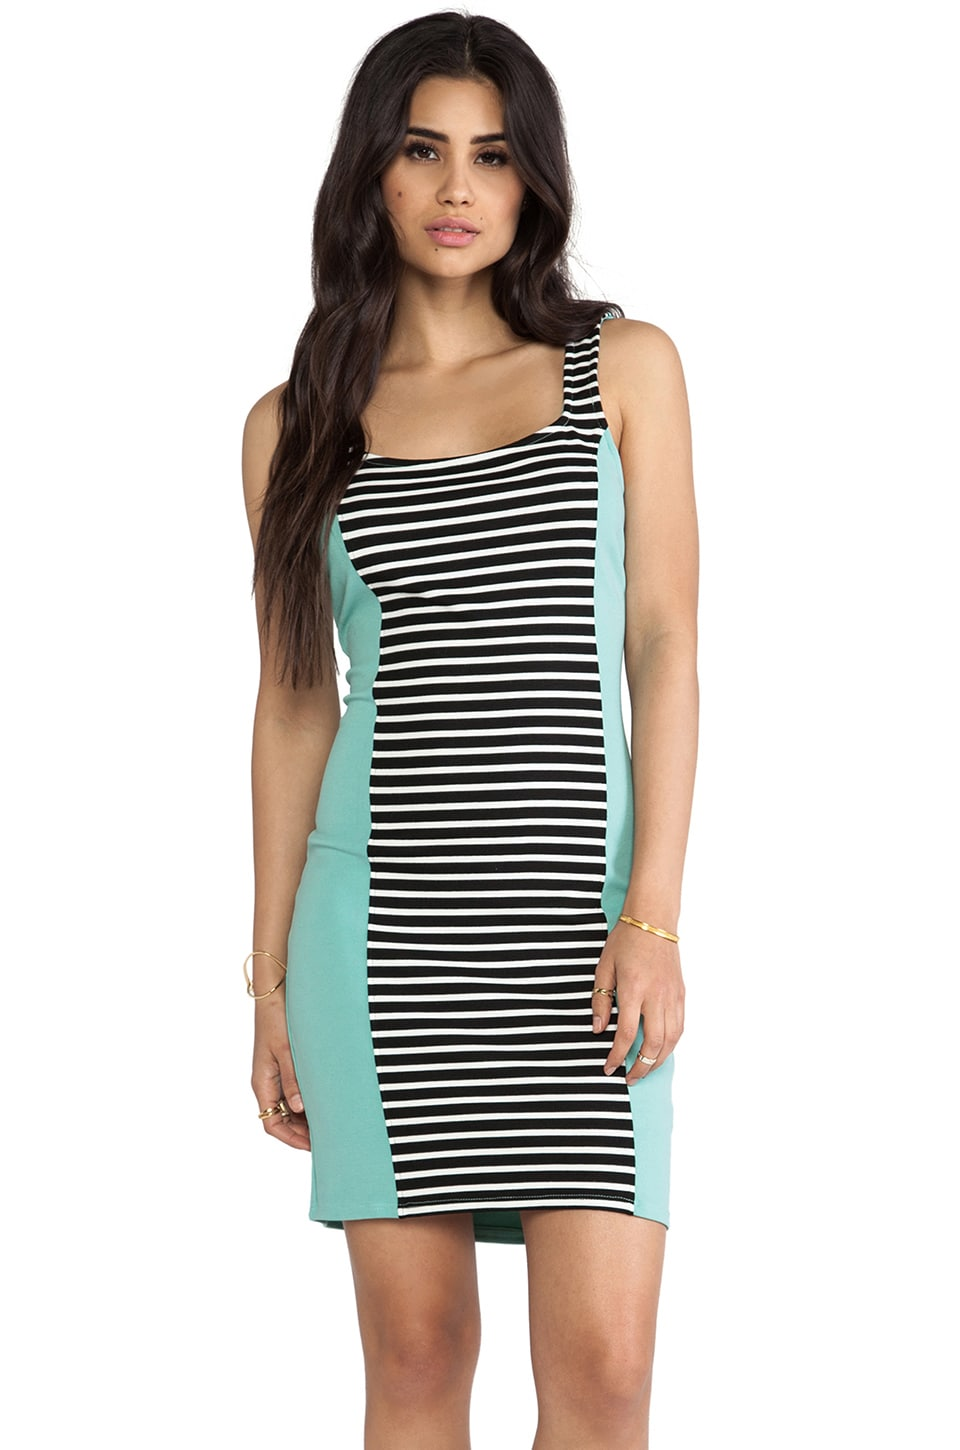 LA Made Colorblocked Stripe Bodycon Dress in Stripe & Mint